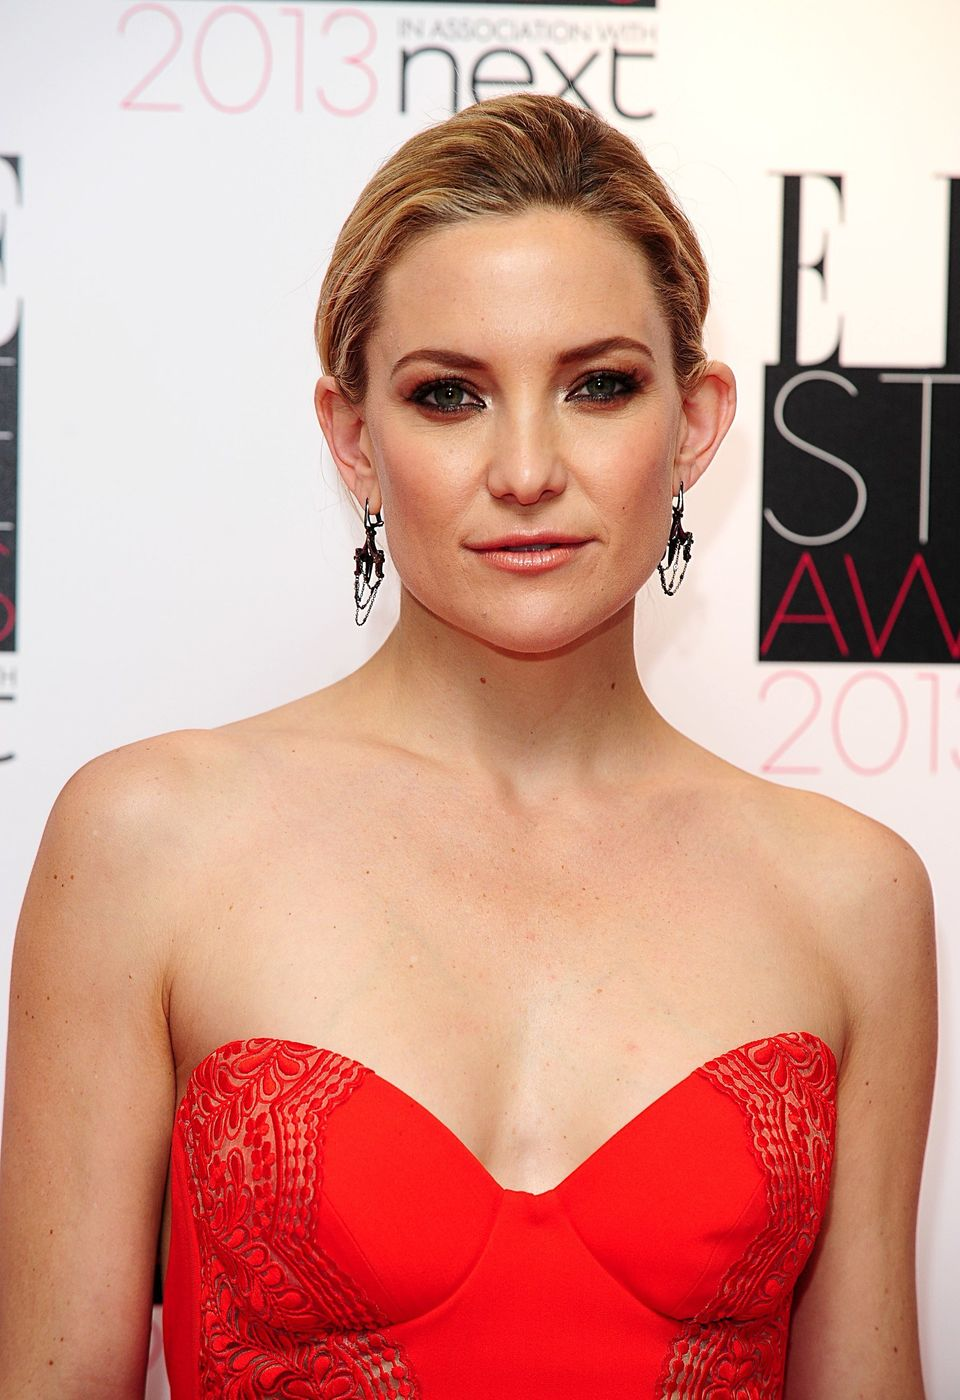 Kate Hudson at the 2013 Elle Style Awards at The Savoy Hotel in central London.